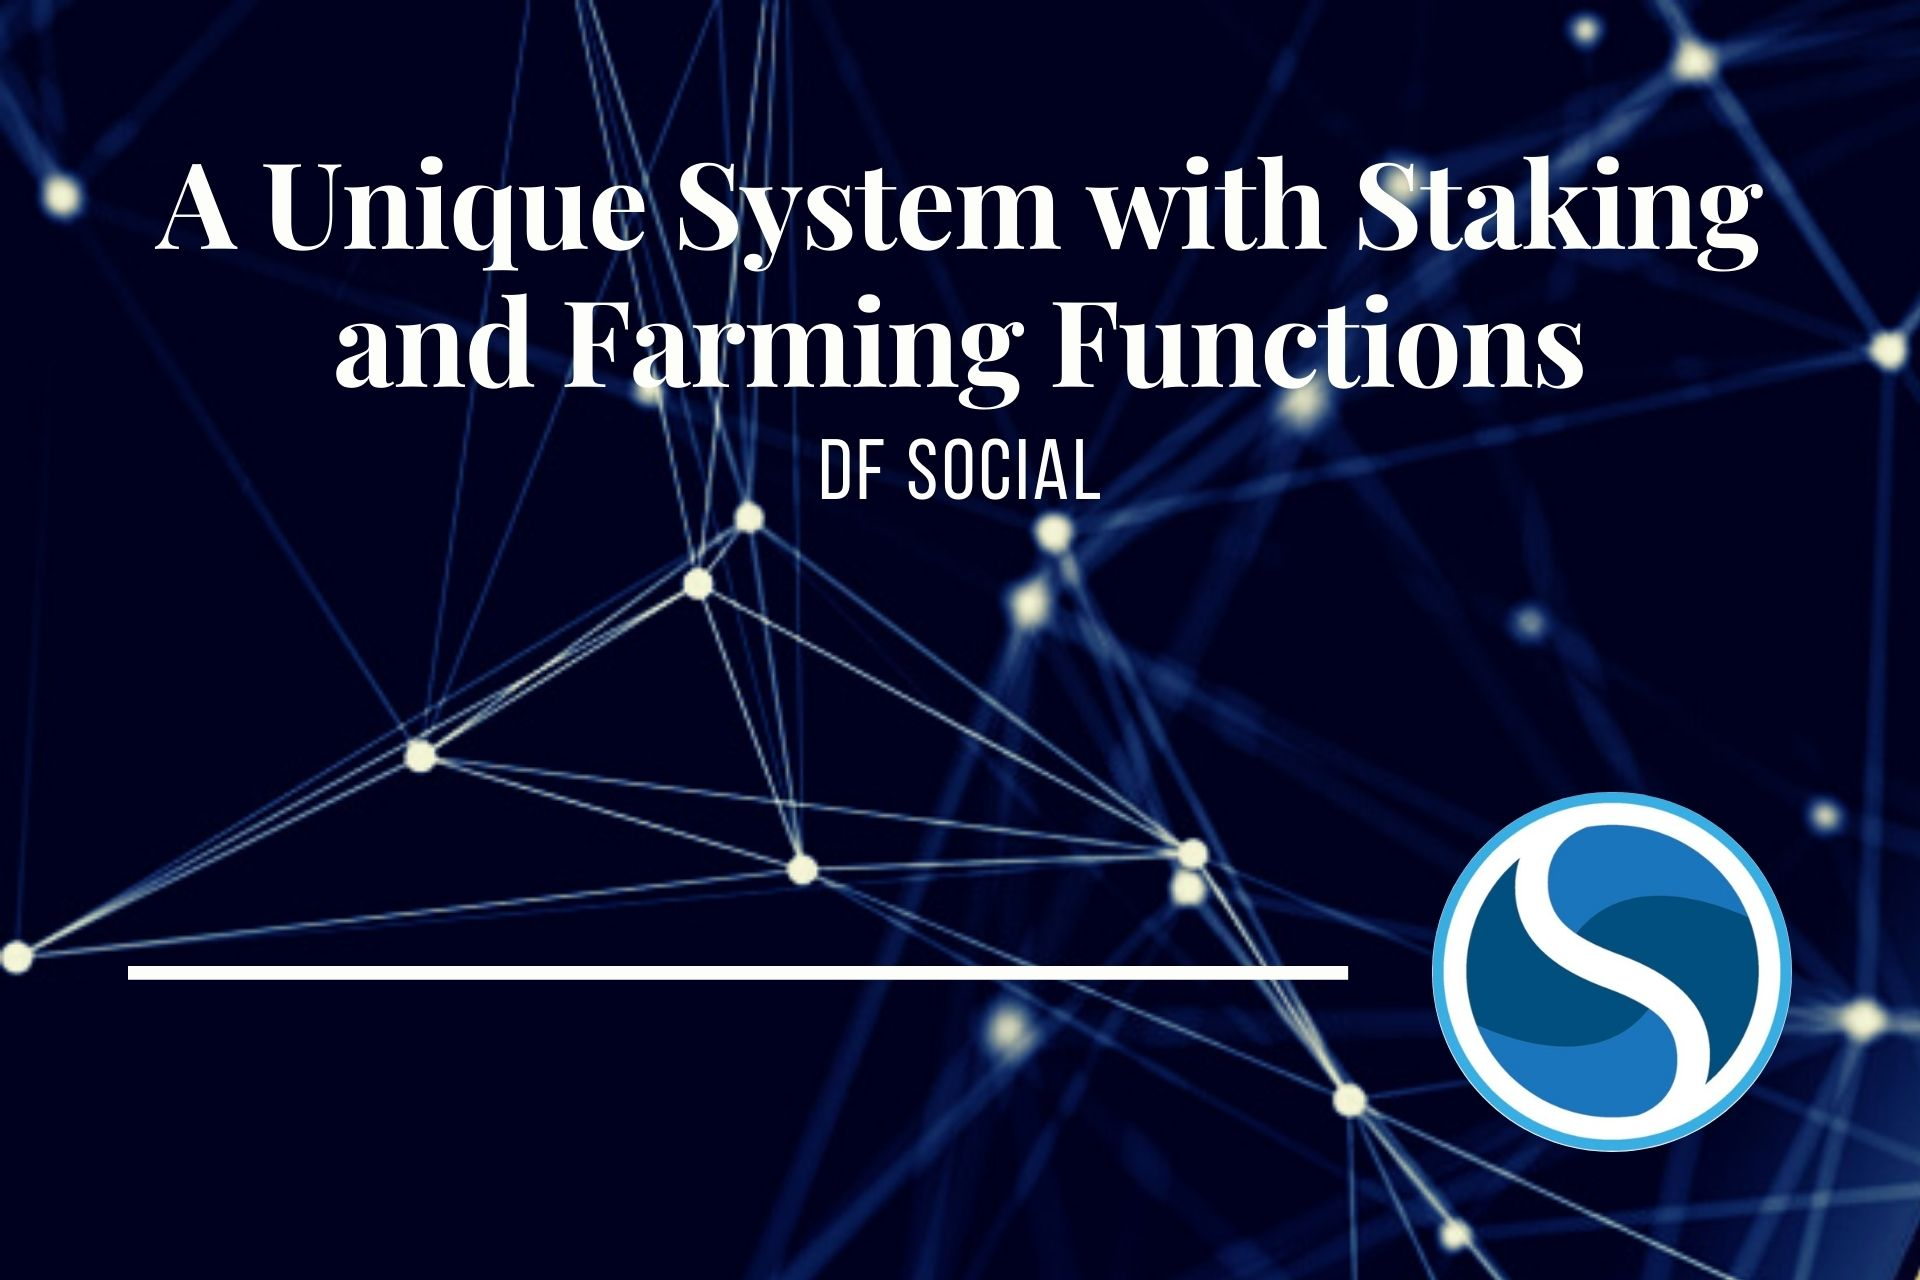 DF Social | A Unique System Added with Staking and Farming Functions For the Community